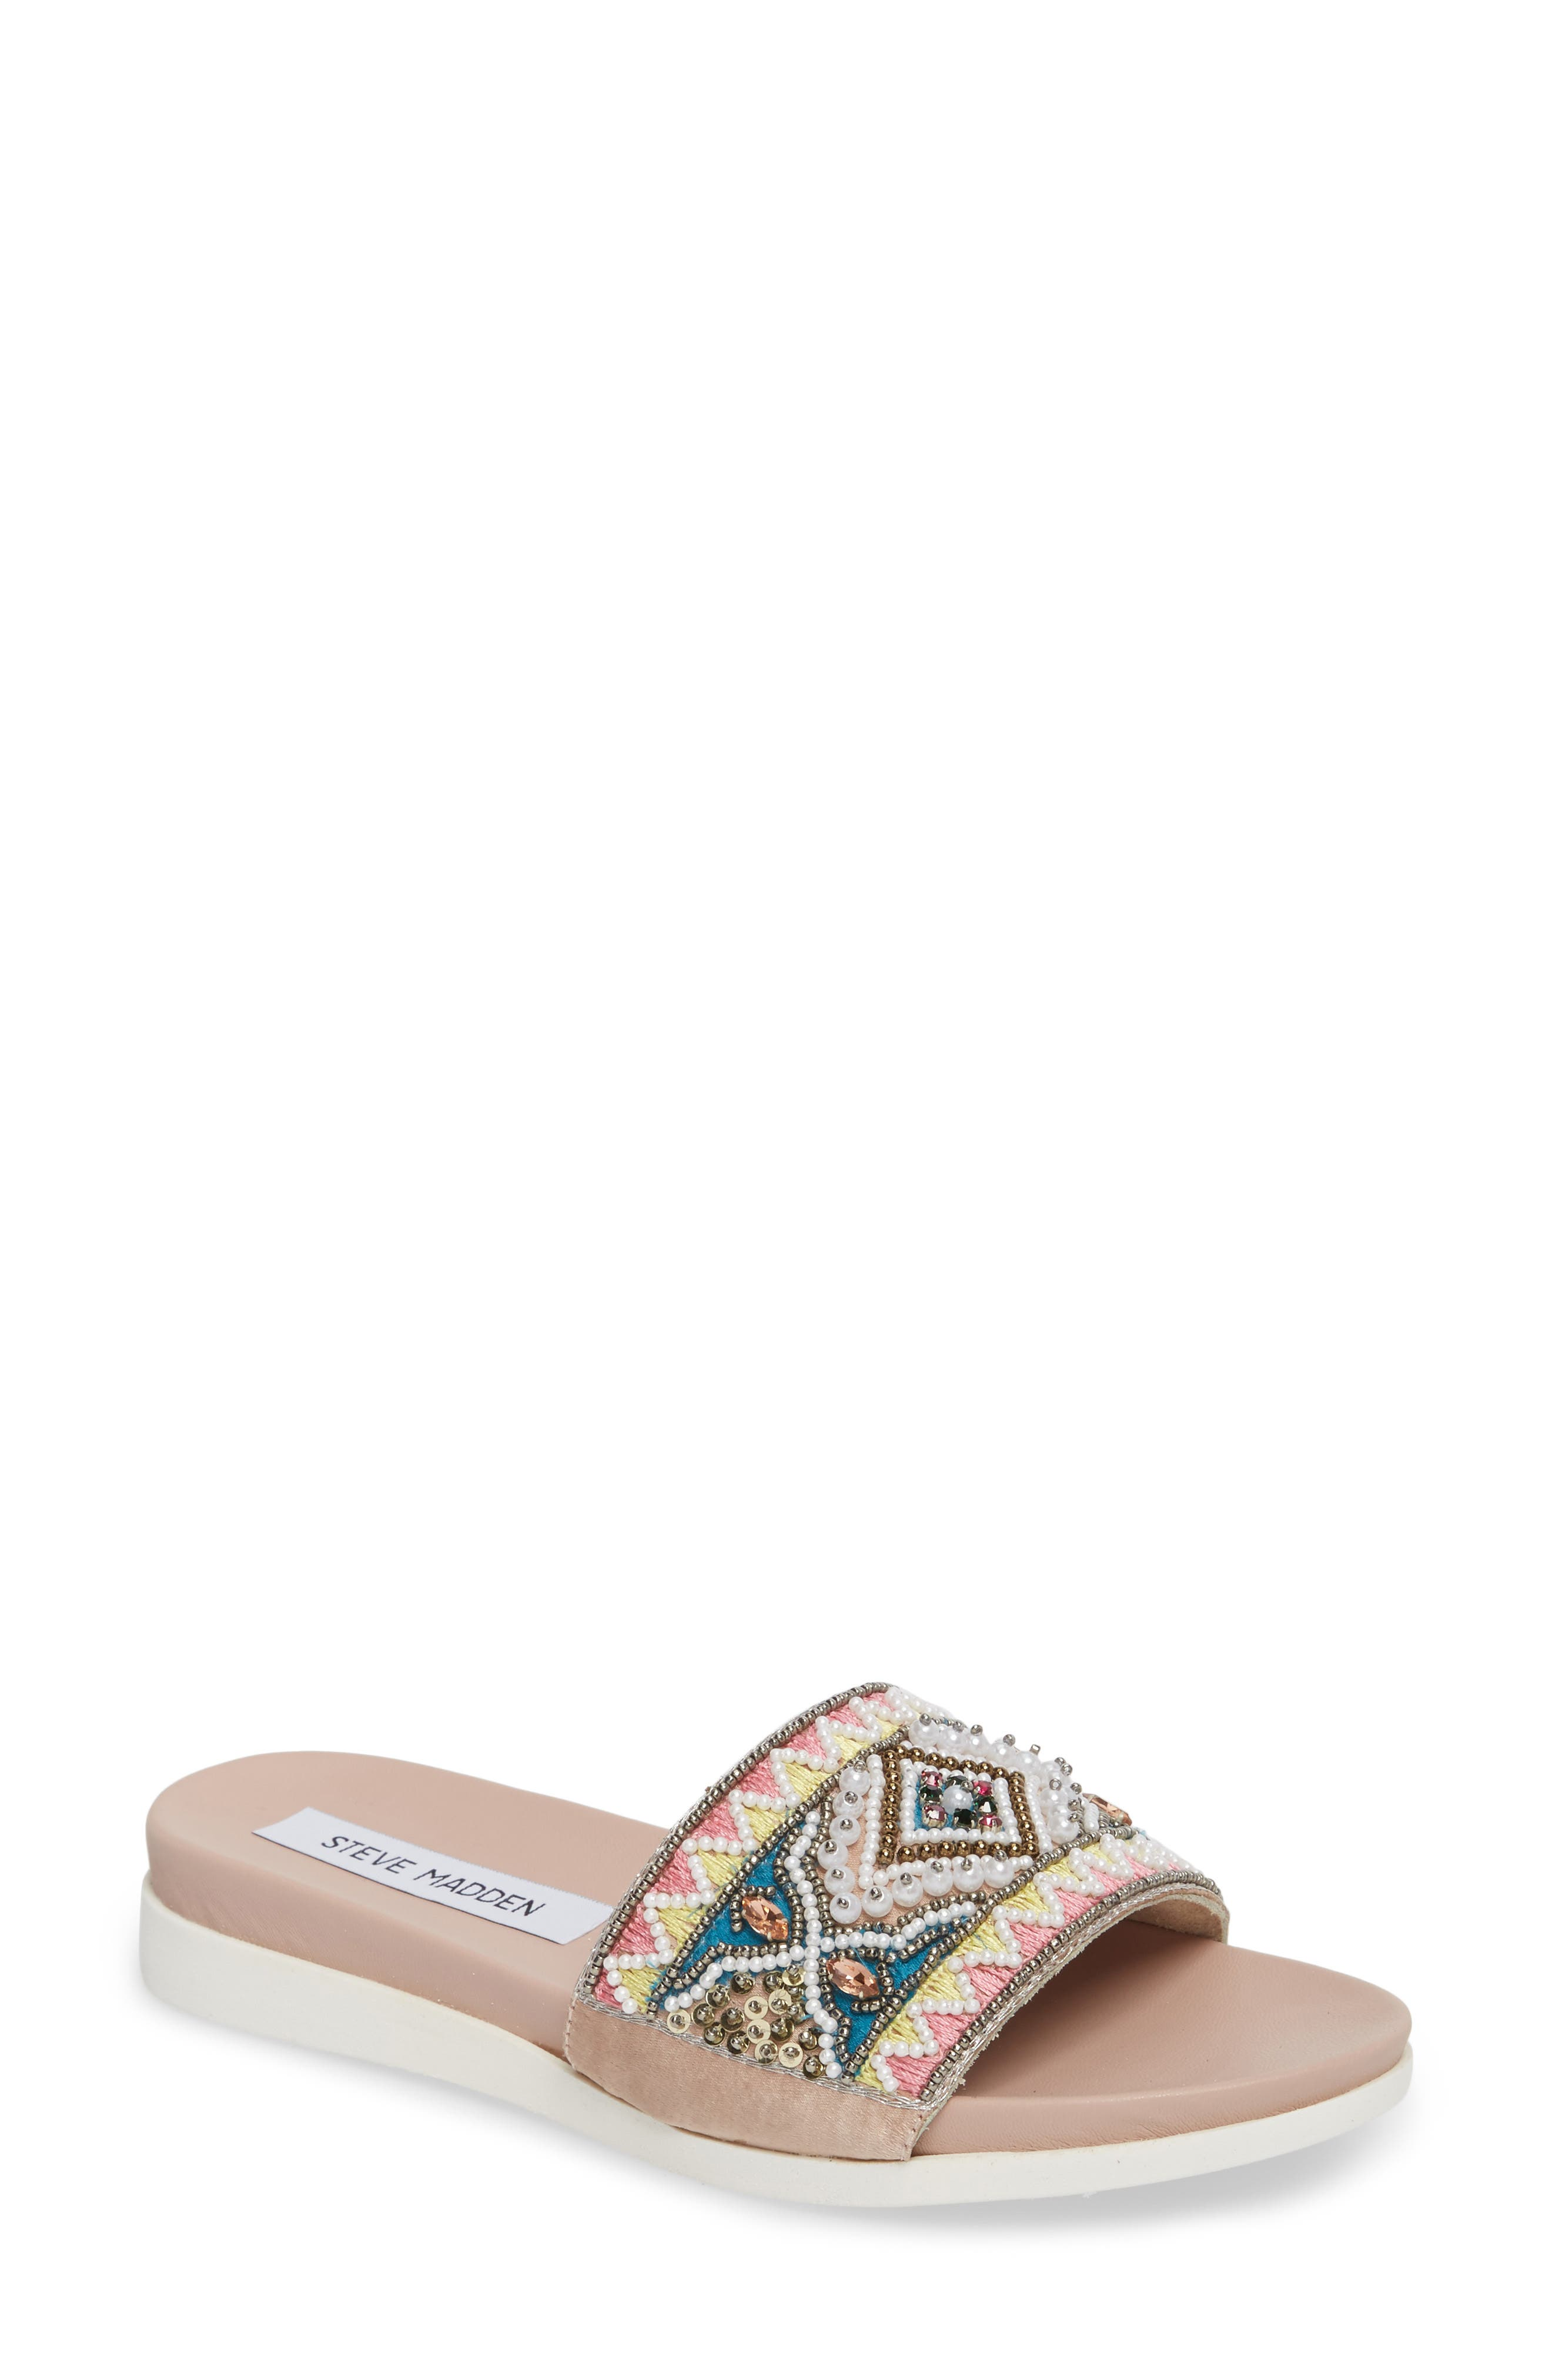 Thalia Beaded Slide Sandal,                         Main,                         color, 400